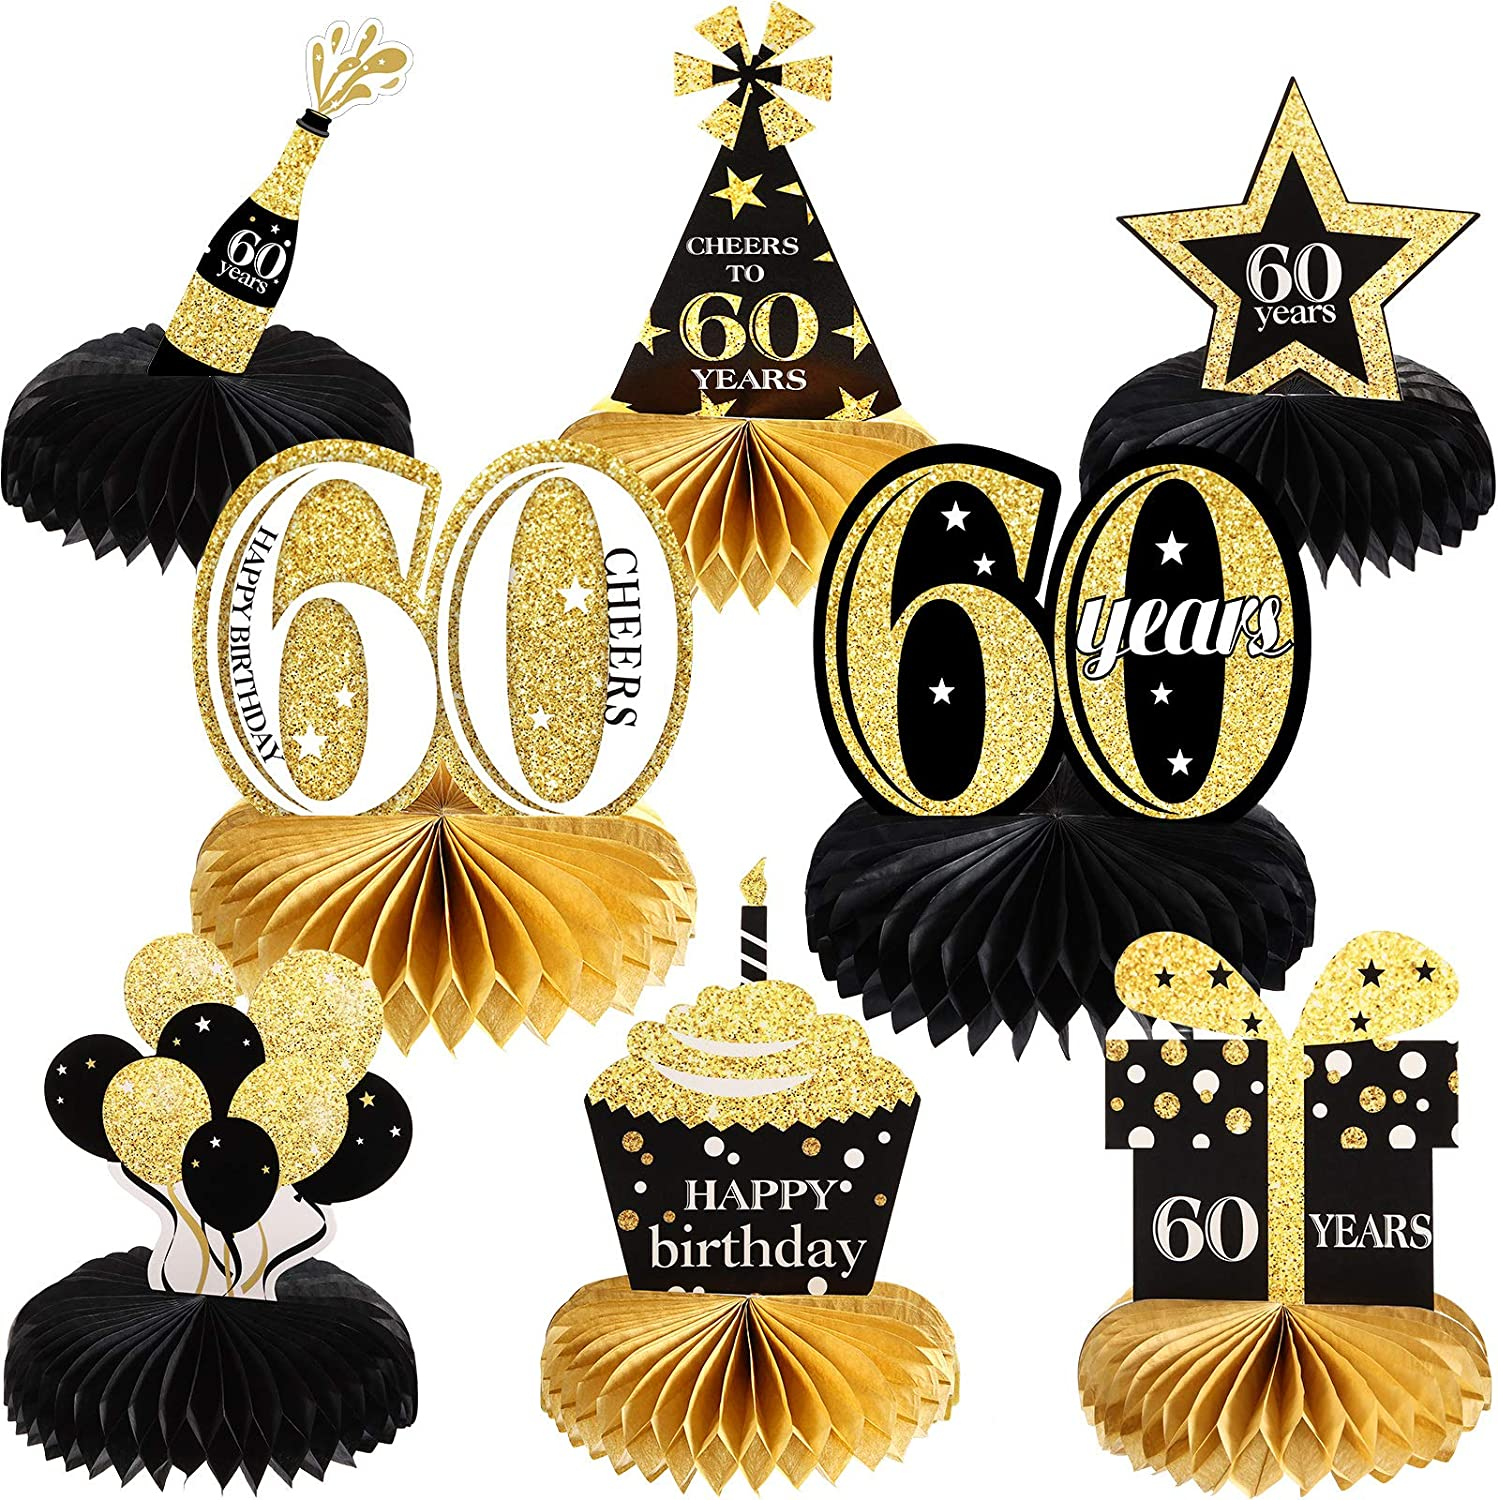 8 Pieces 60th Birthday Honeycomb Table Centerpieces Happy 60th Birthday Decorations Cheers to 60 Years Table Toppers for Sixty Years Birthday Party Favors